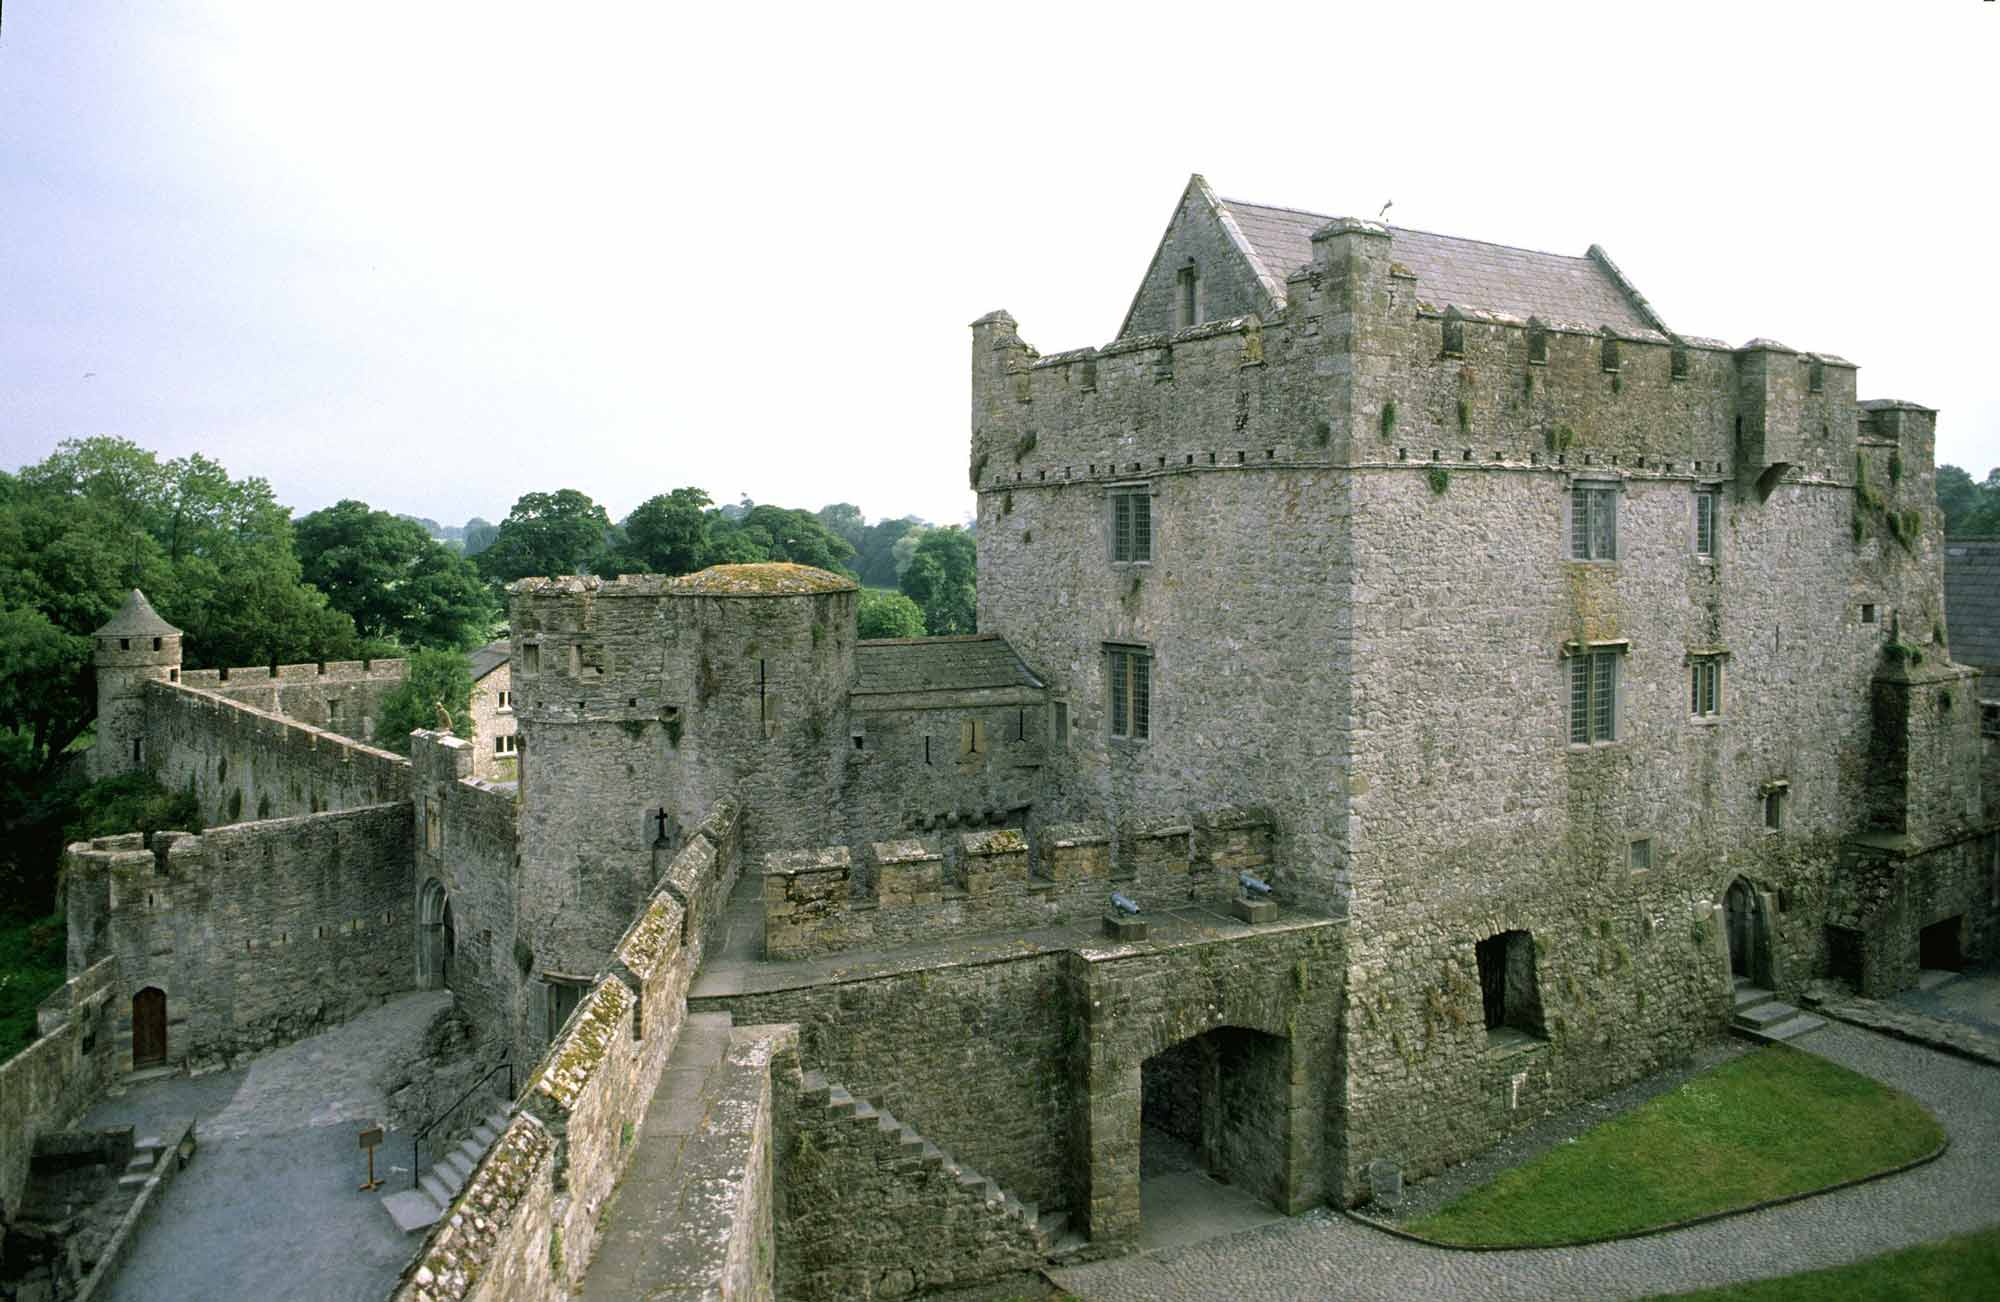 View of Cahir Castle from along the castle walls